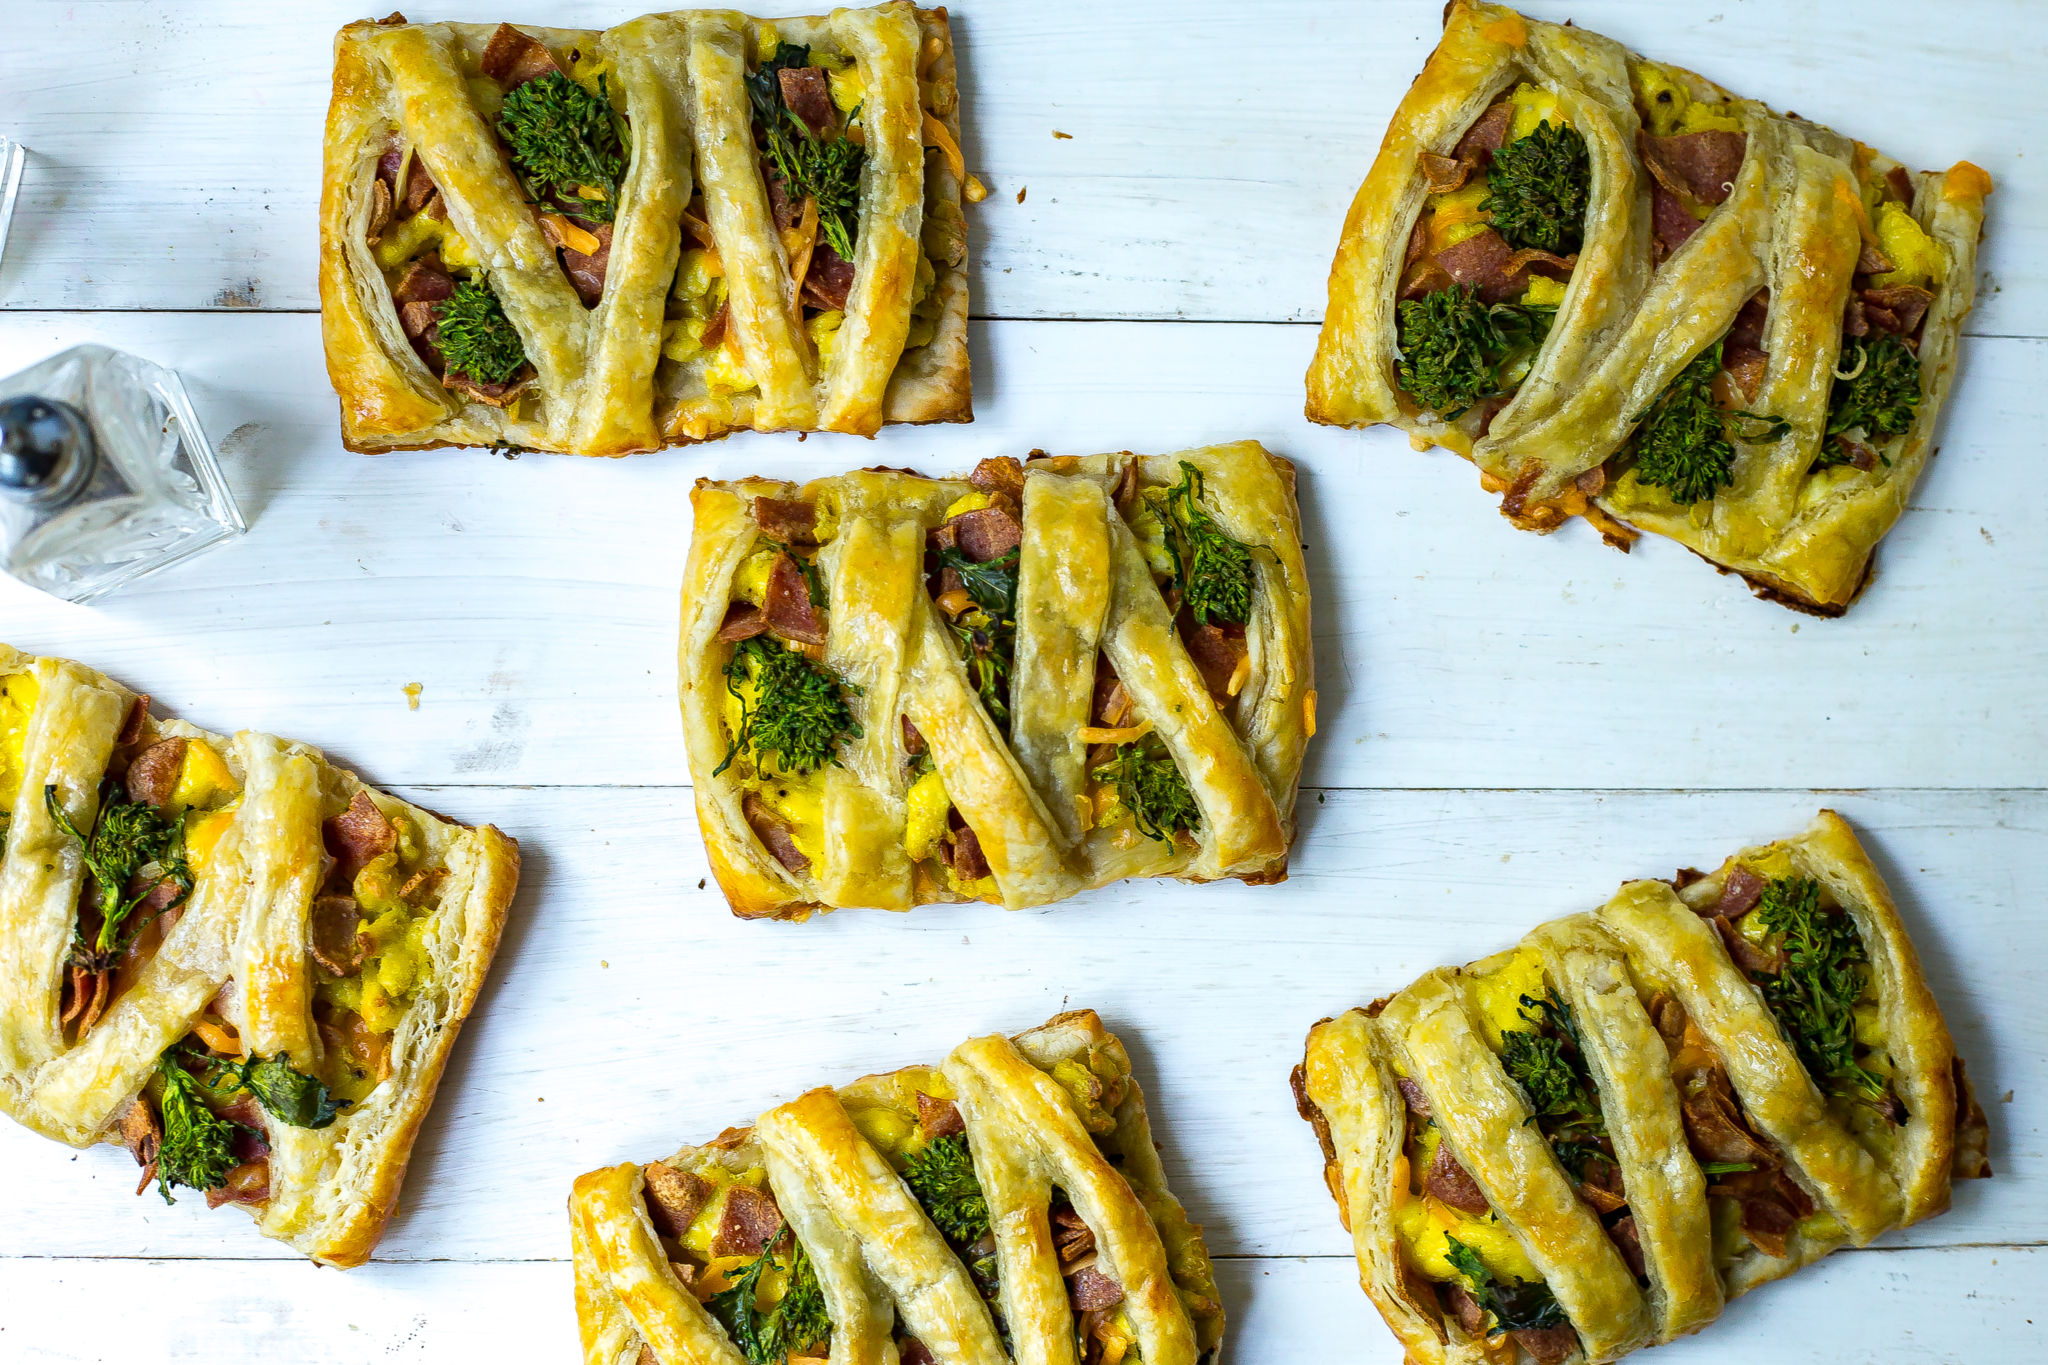 Savory Broccoli Rabe Breakfast Pastries